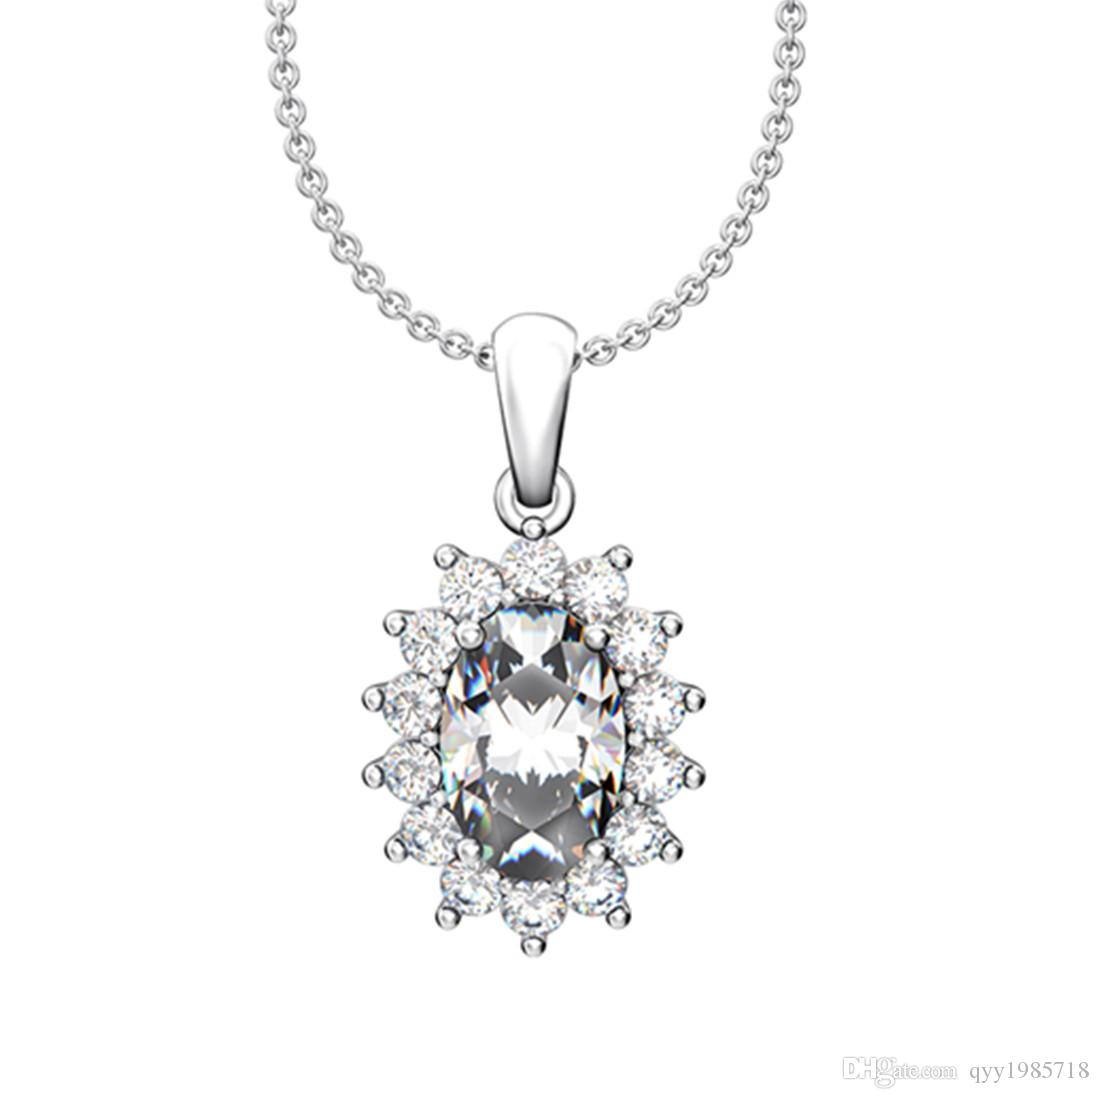 8d2a30e5b4e Wholesale Pretty 2Ct Oval Cut Synthetic Diamonds Pendant Sterling Silver  Swearter Pendant Necklace White Gold Color Jewelry Free 925 Chain Snowflake  Pendant ...